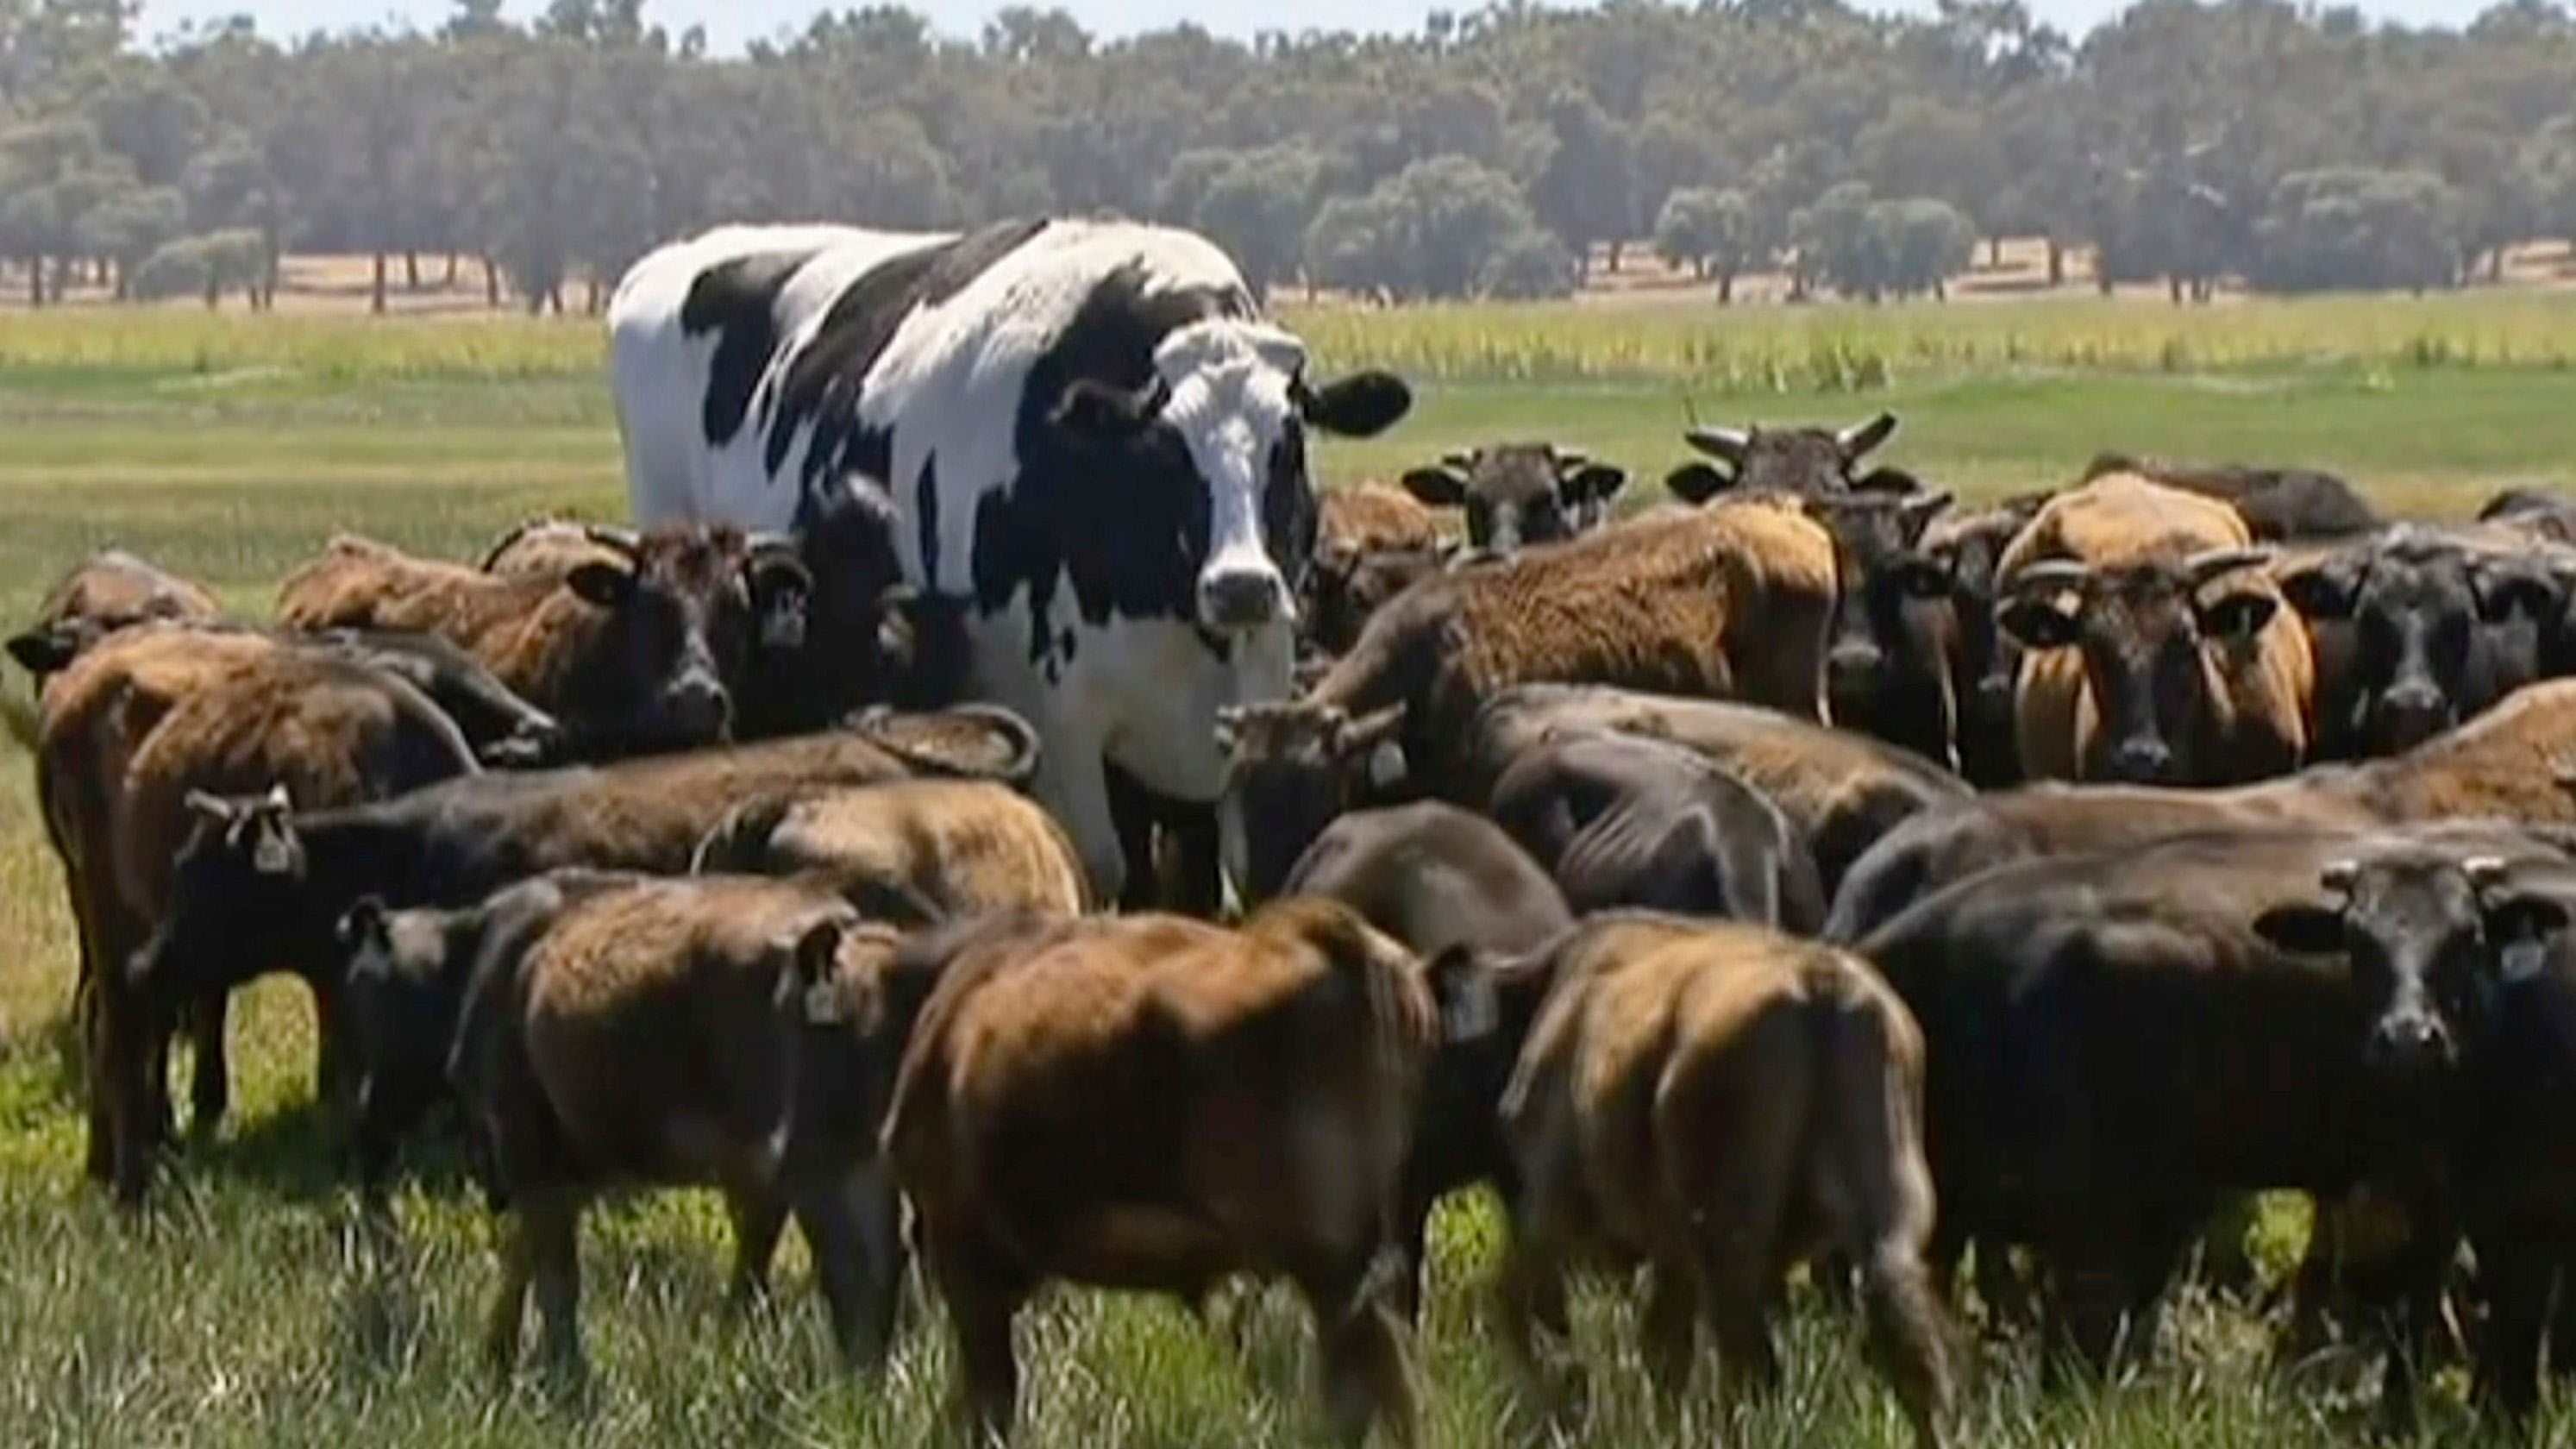 British livestock still have some way to go before they reach the super-size scale of Knickers, the Australian steer.